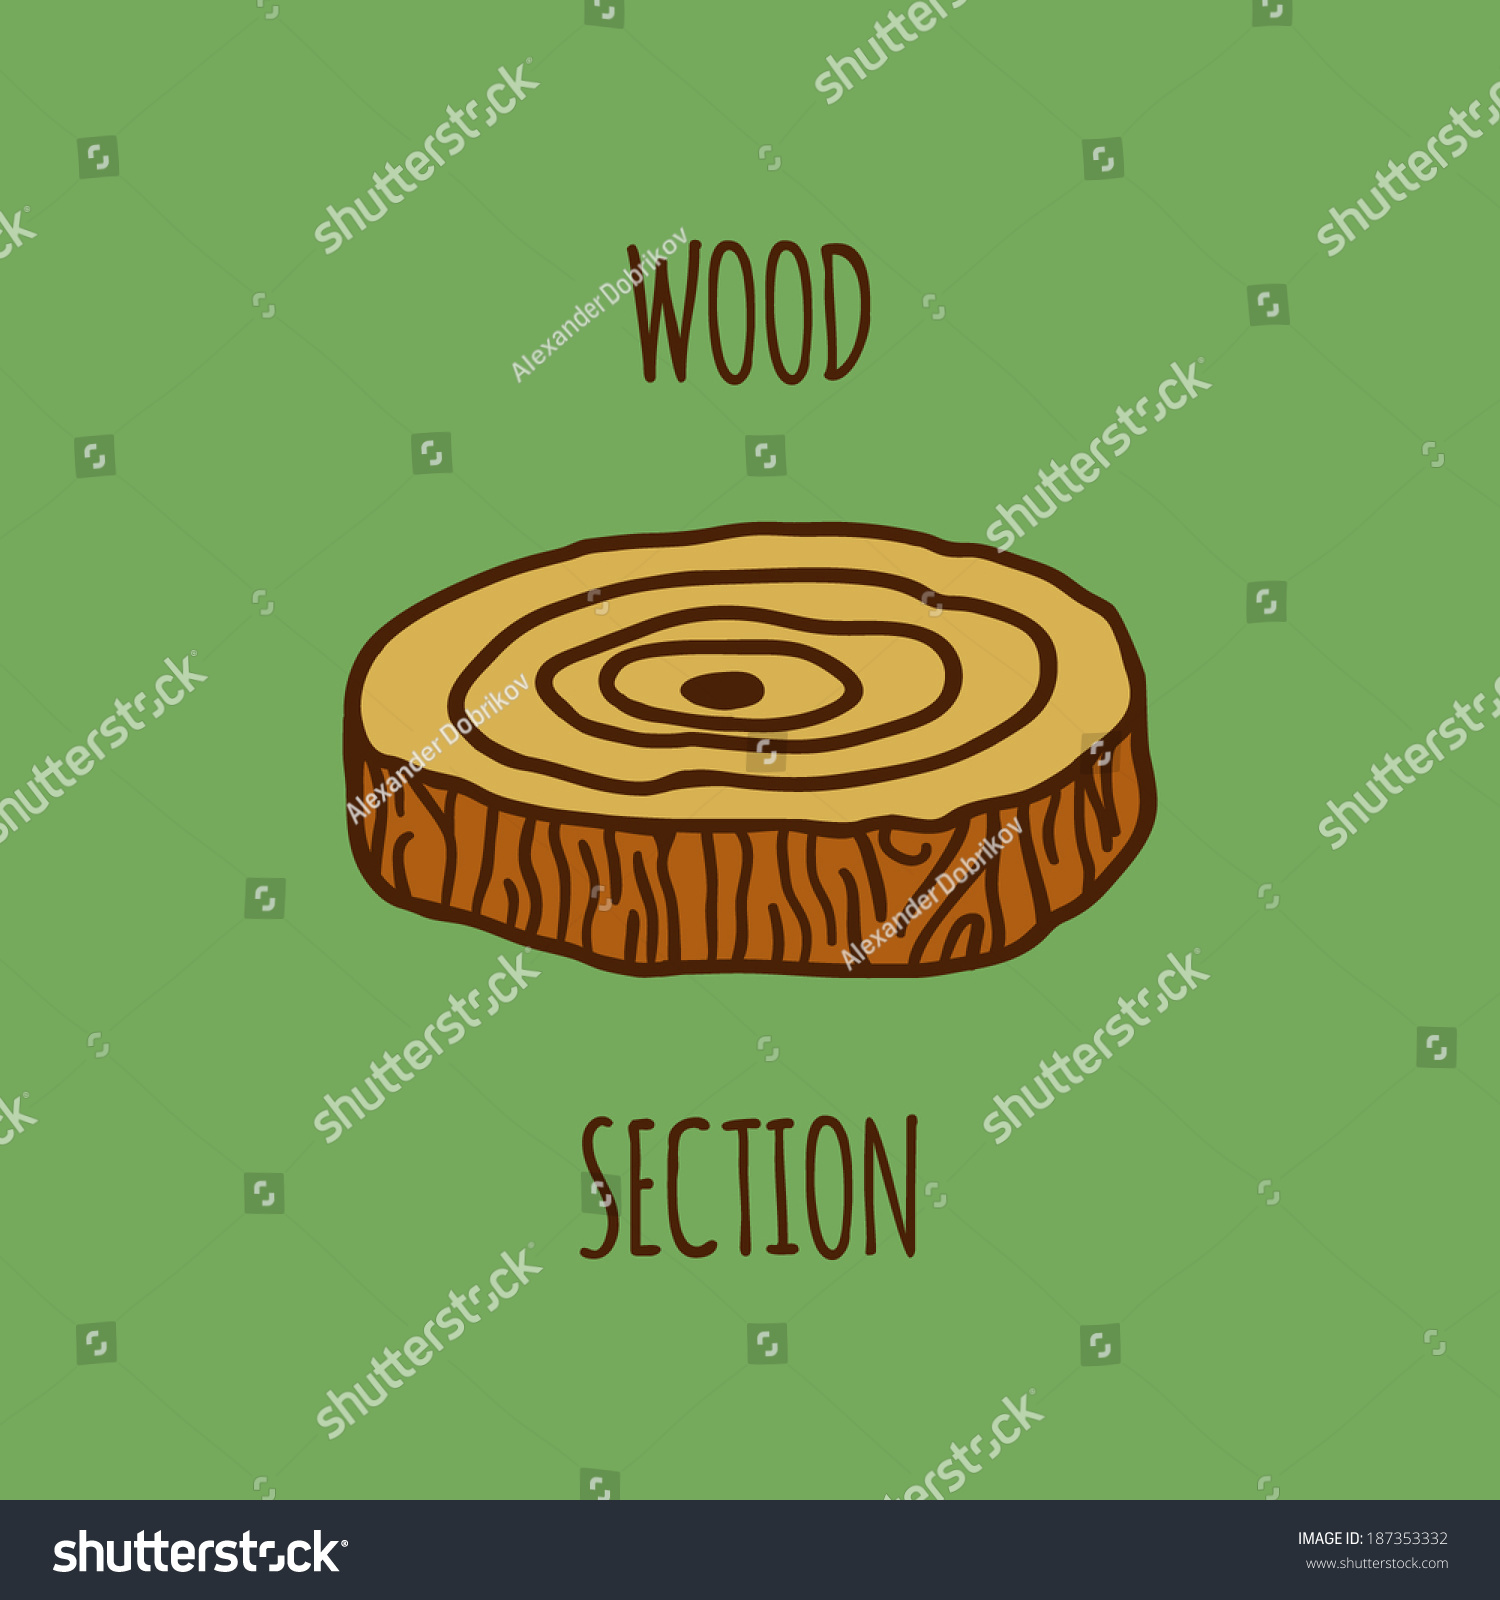 Wood section illustration stump sign nature stock vector 187353332 wood section illustration stump sign nature stock vector 187353332 shutterstock buycottarizona Choice Image